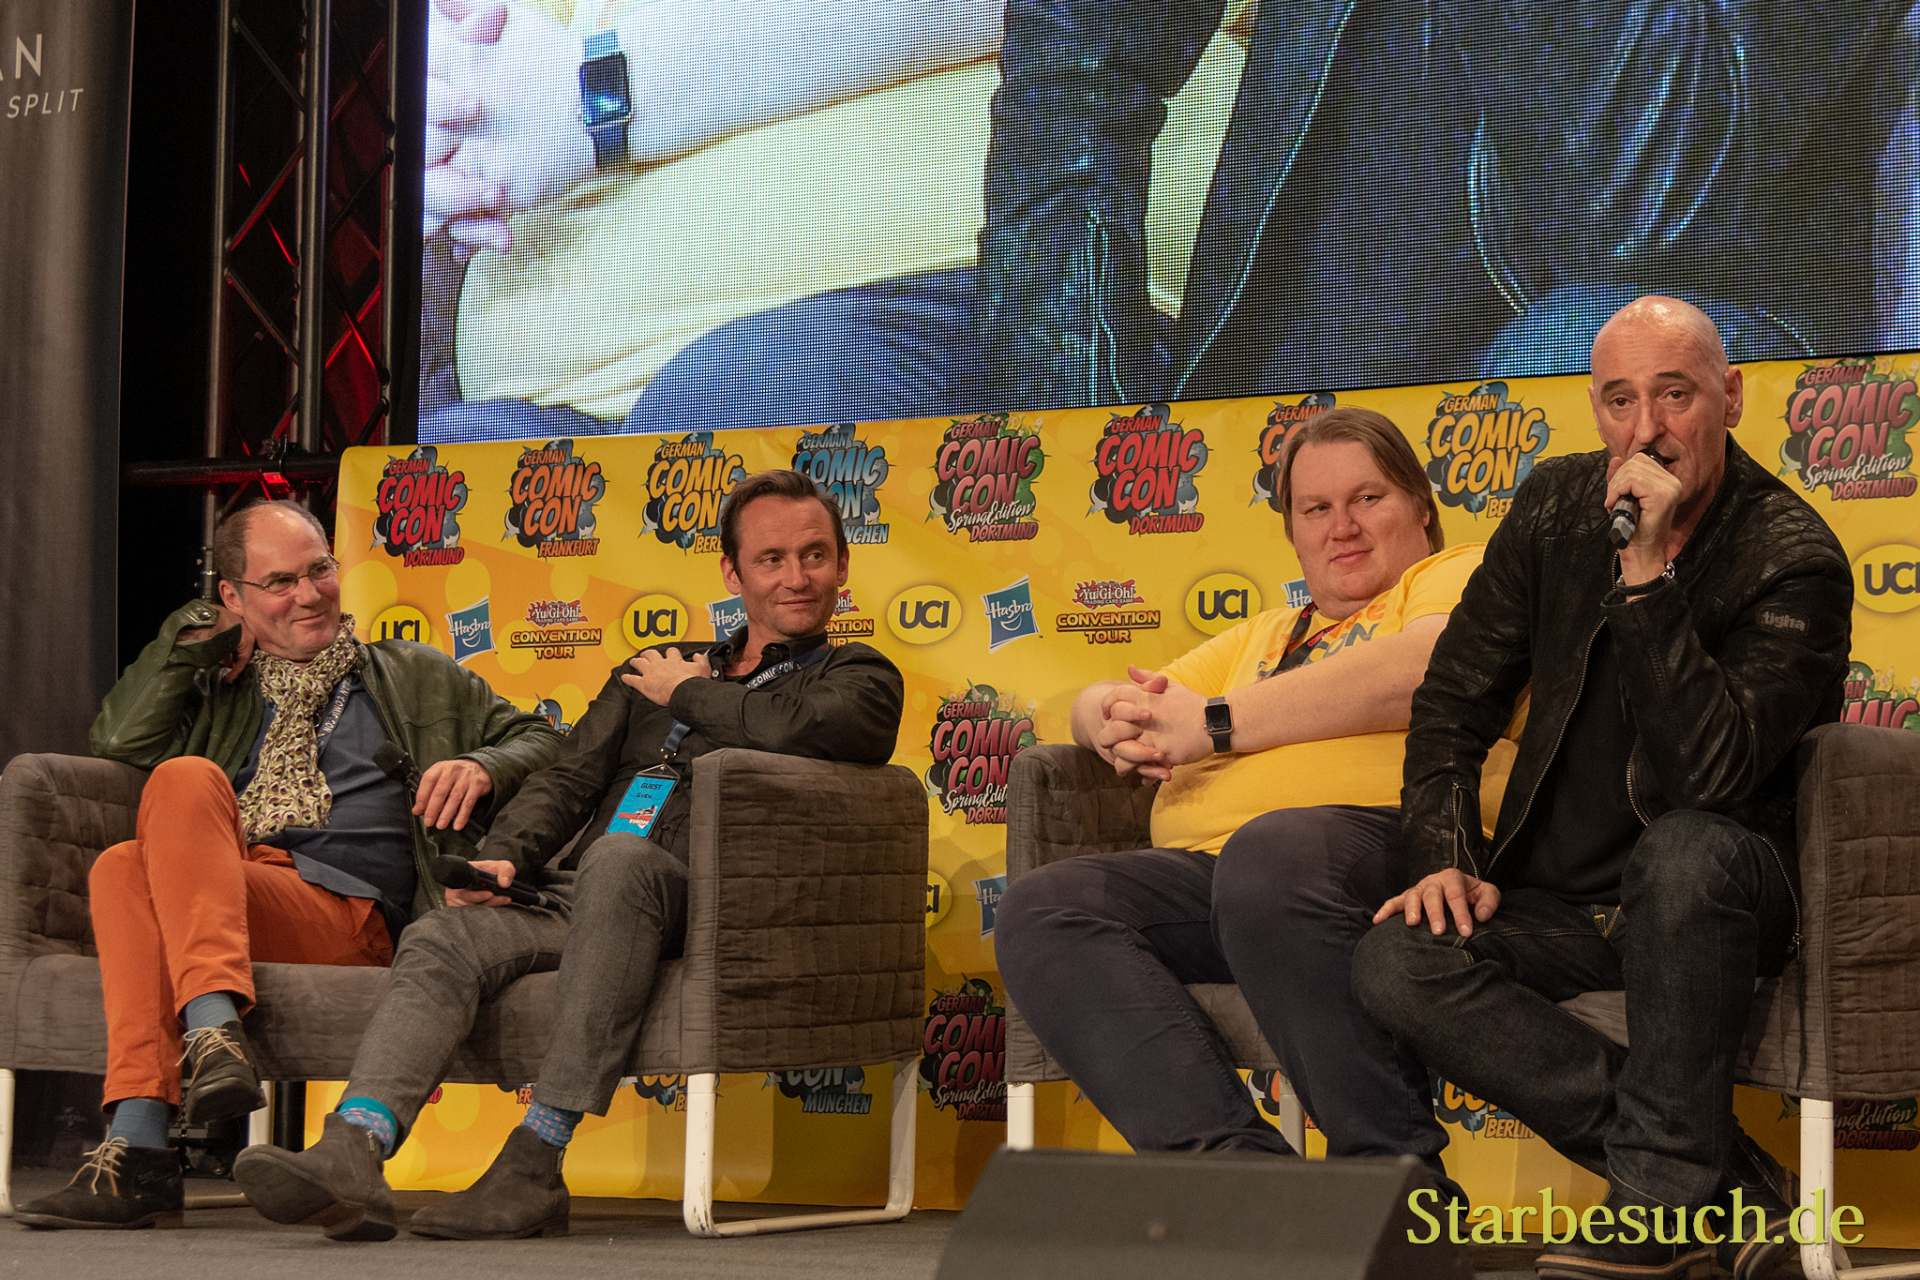 DORTMUND, GERMANY - December 1st 2018: Marcus Off, Sven Gerhardt, Sven Vössing and Ingo Albrecht at German Comic Con Dortmund, a two day fan convention